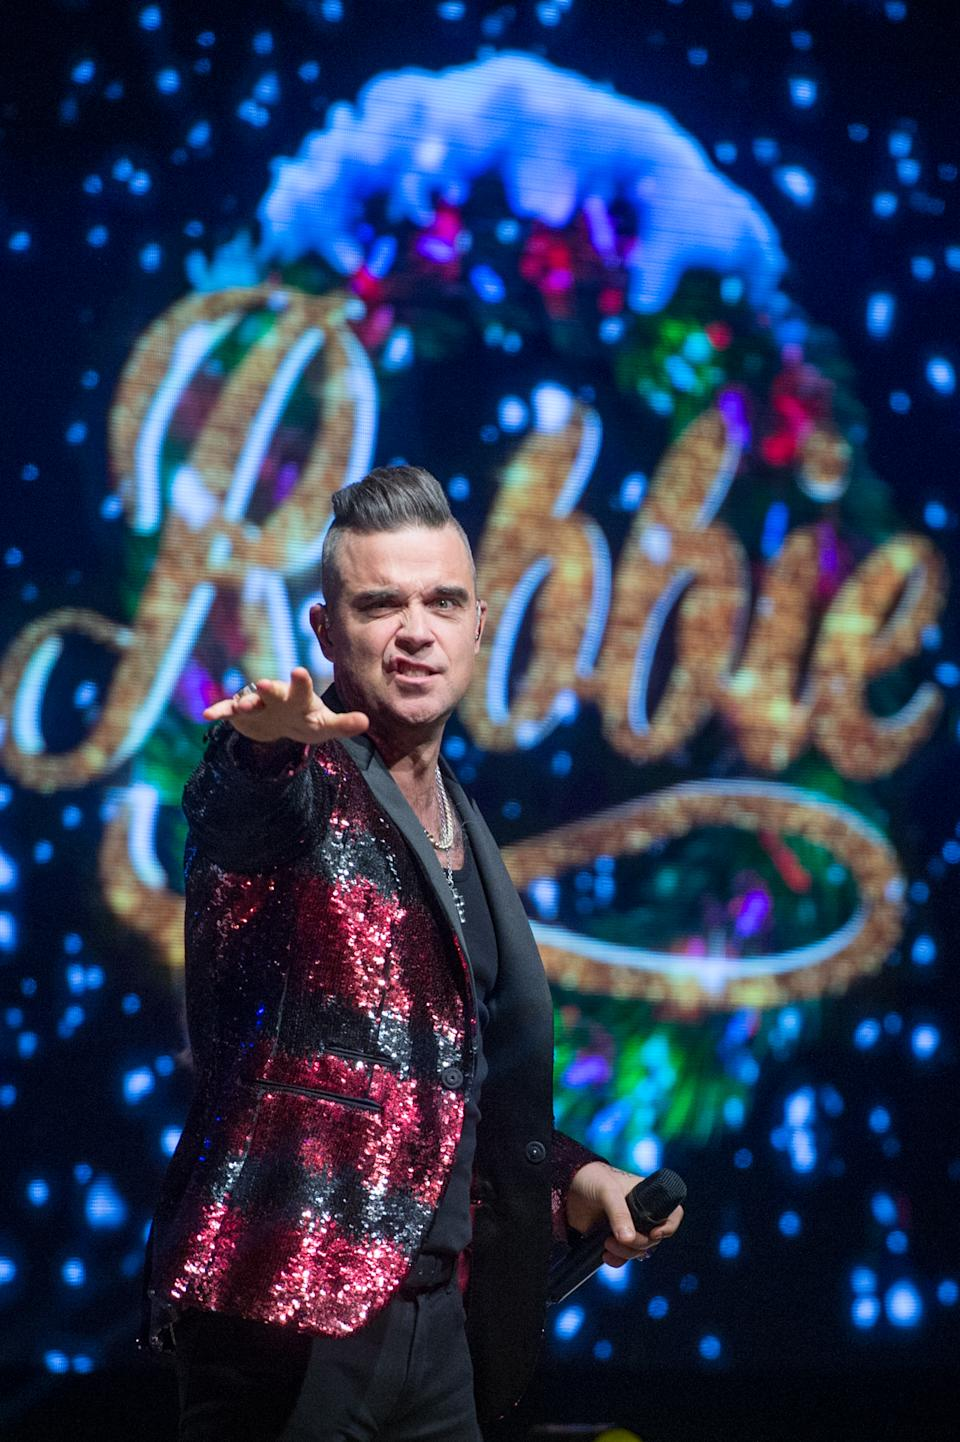 Robbie Williams performs on the eve of the release of his album 'The Christmas Present' at The Bavarian Hut stage during Winter Wonderland 2019 at Hyde Park on November 21, 2019 in London, England. (Photo by Ollie Millington/Redferms)